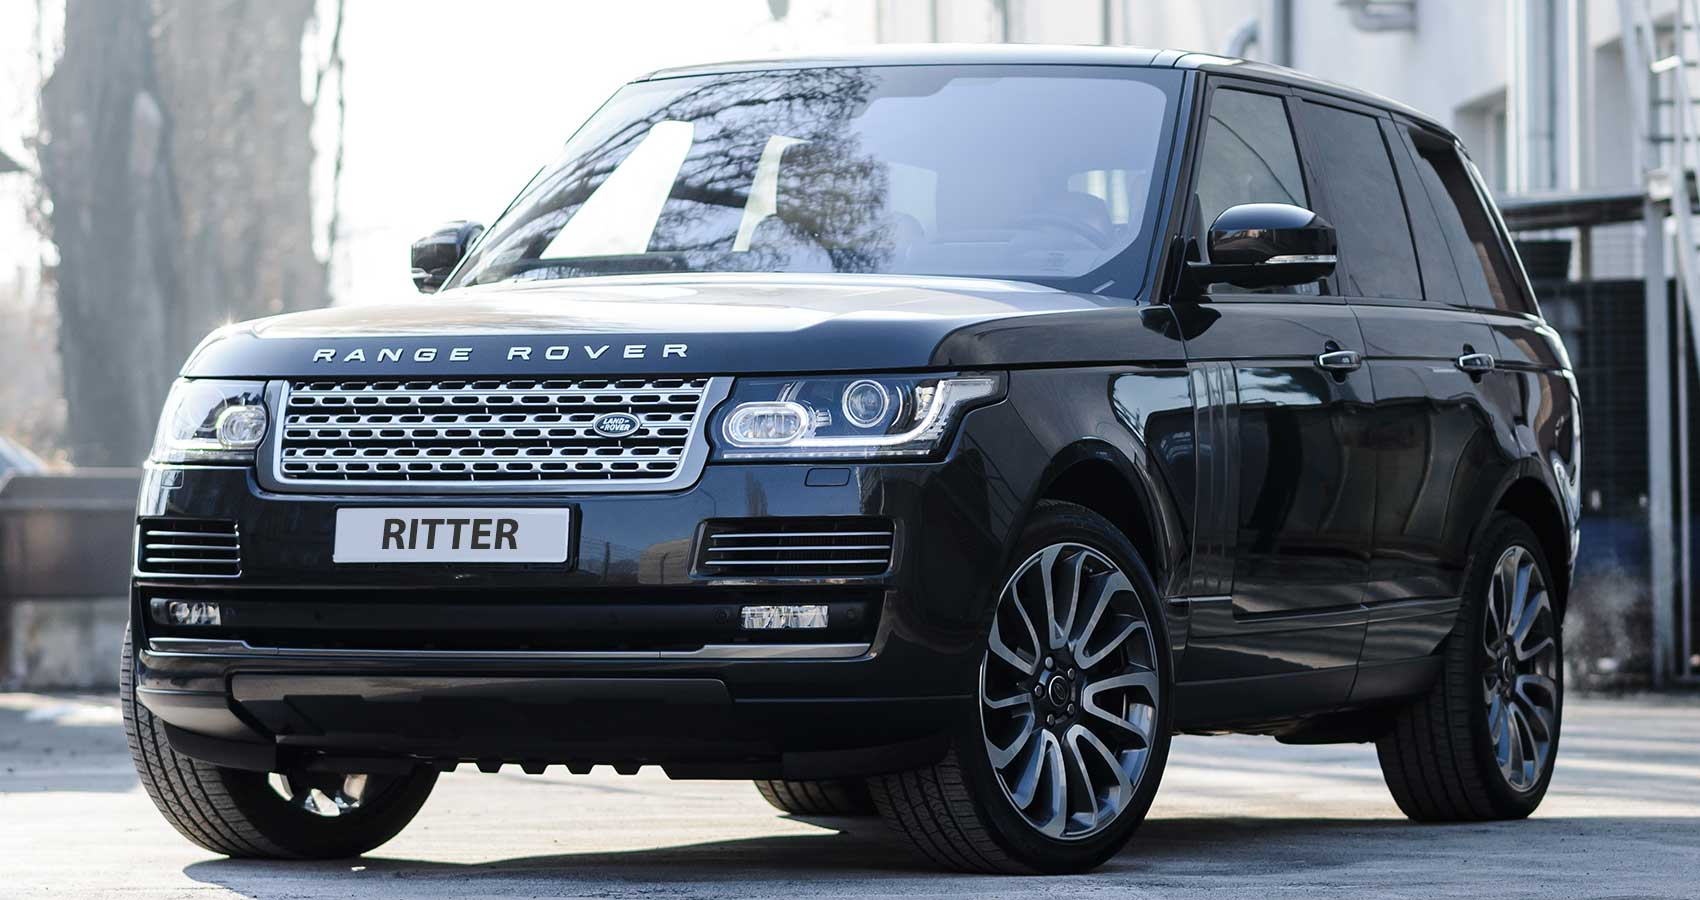 Sales| Ritter Land Rover